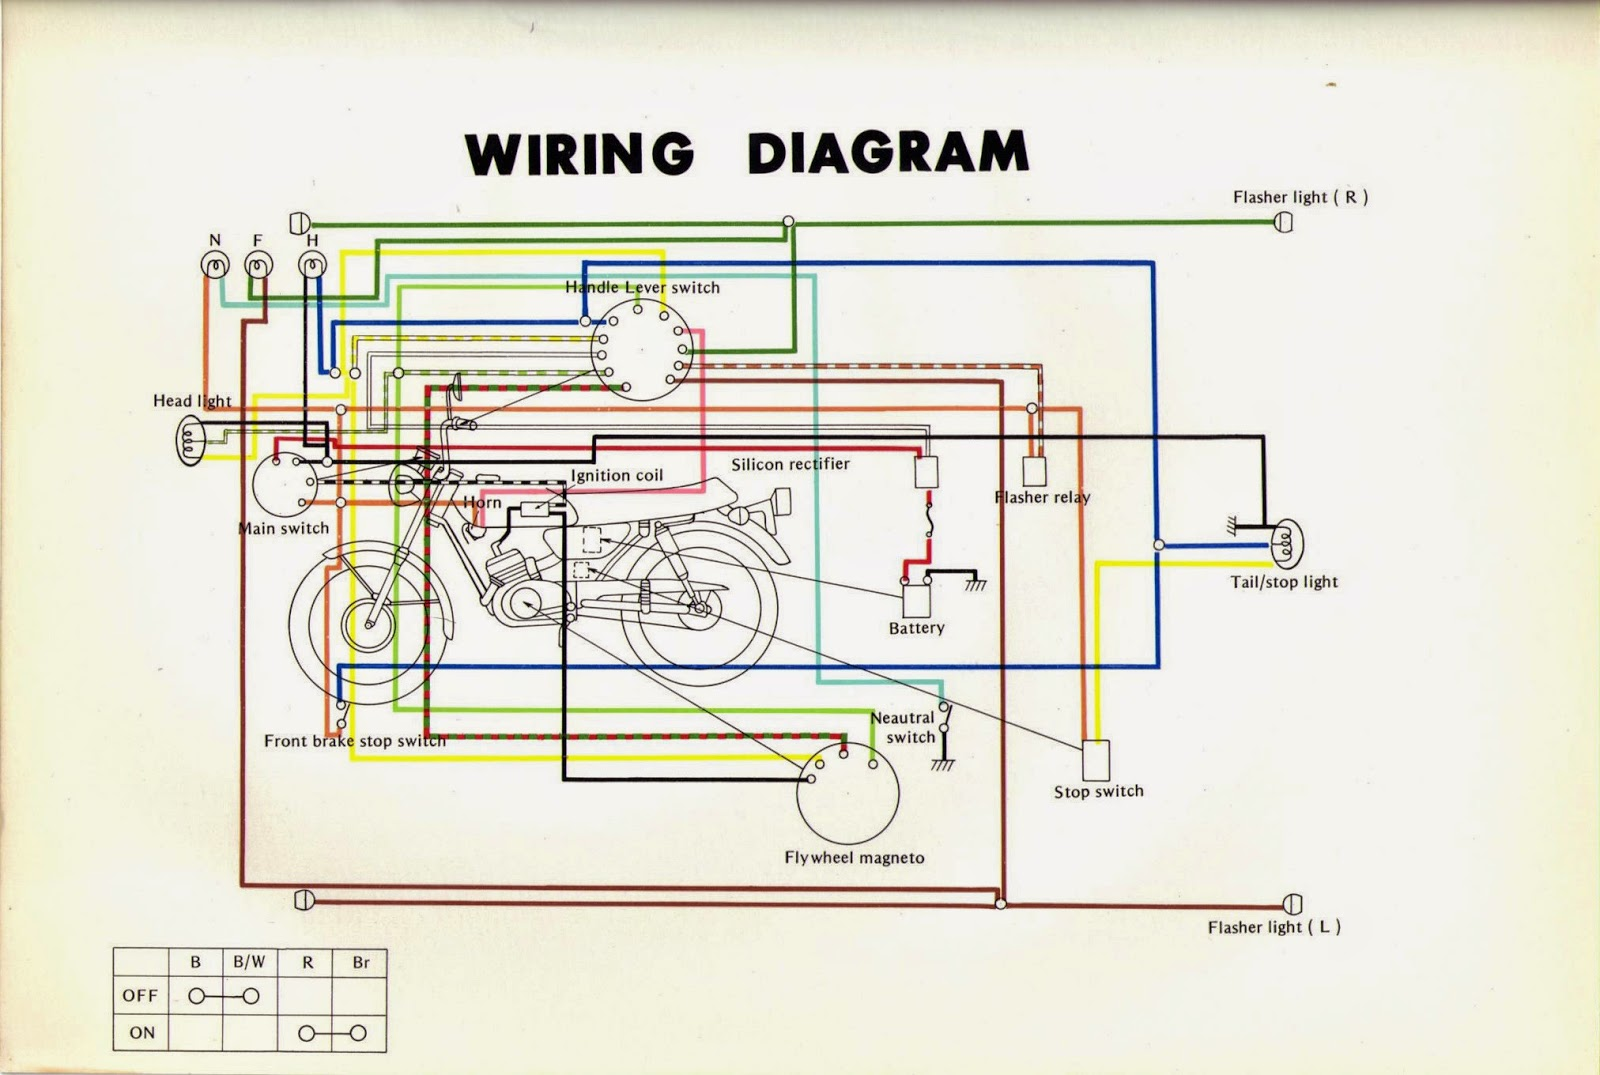 Yamaha service manual003 yamaha bolt wiring diagram ez go wiring diagram \u2022 wiring diagrams 2009 Yamaha Raider Wiring-Diagram at readyjetset.co